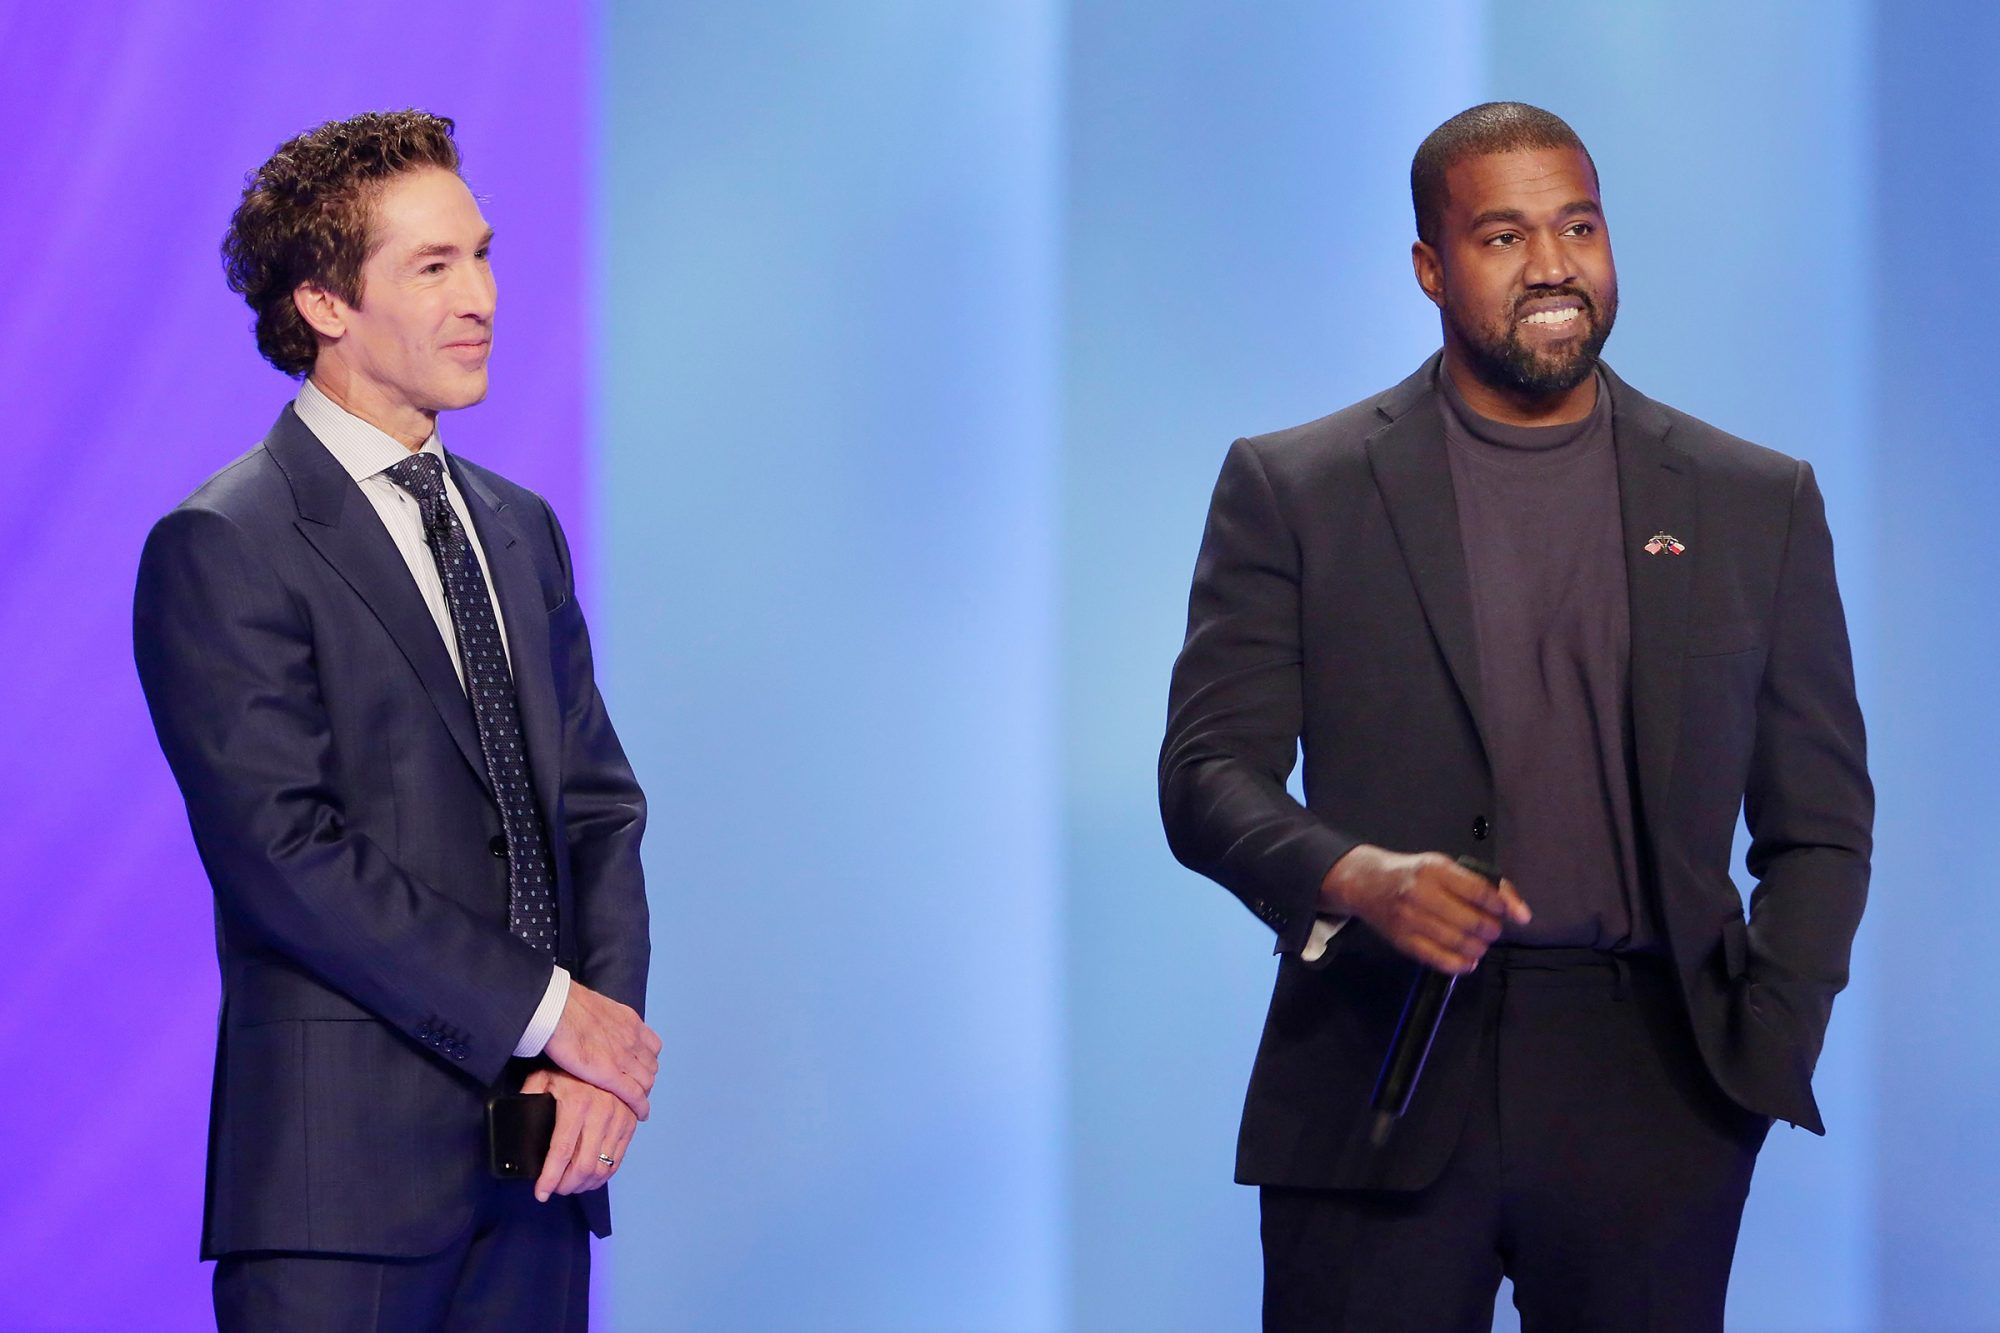 Kanye West, left, answers questions from Sr. pastor Joel Osteen, right, during the 11 am service at Lakewood Church, in Houston Lakewood Church's 11am service, Houston, USA - 17 Nov 2019